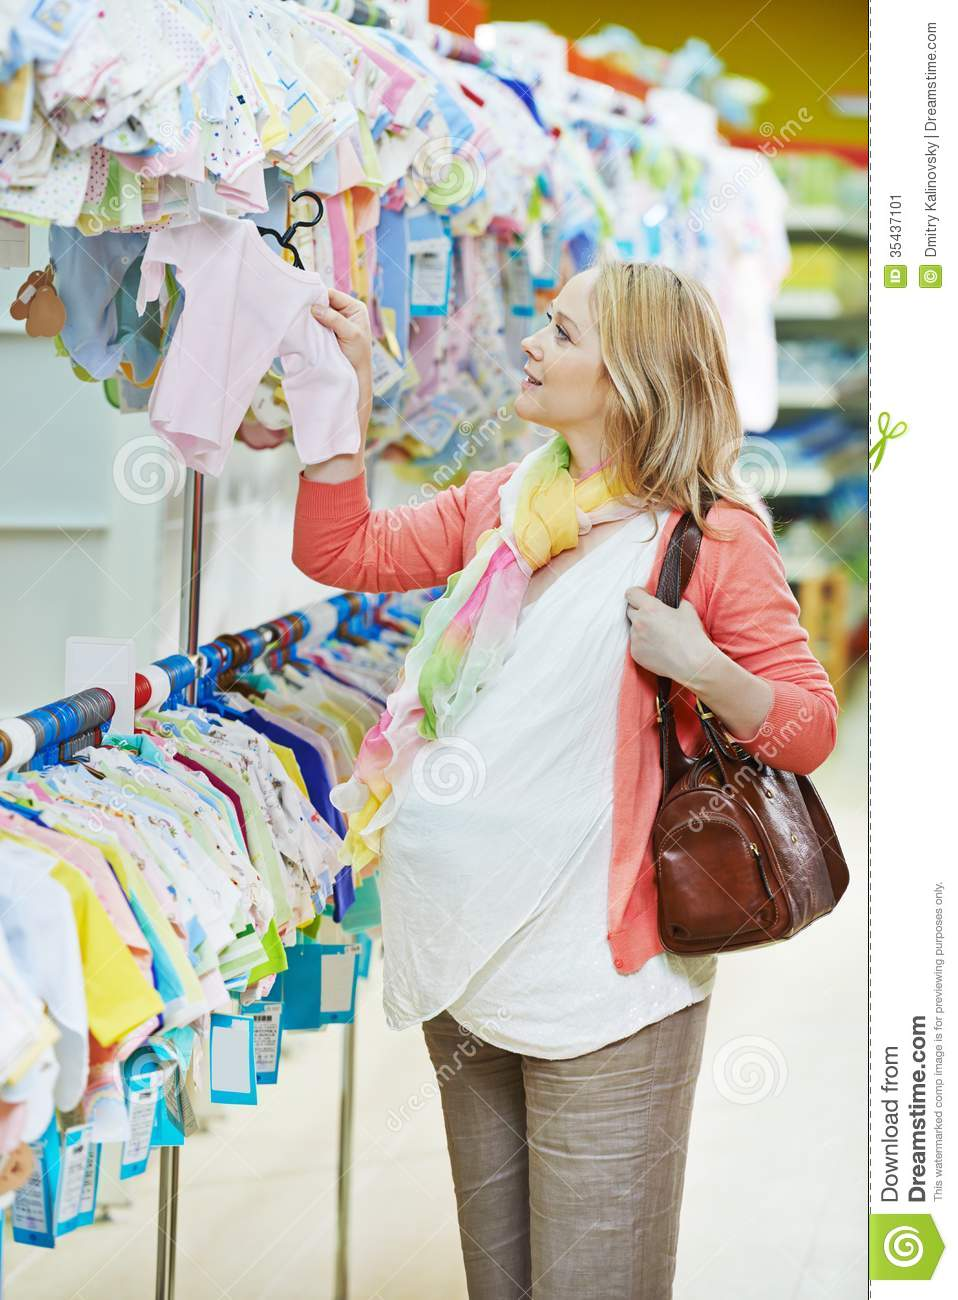 Stores for maternity clothes